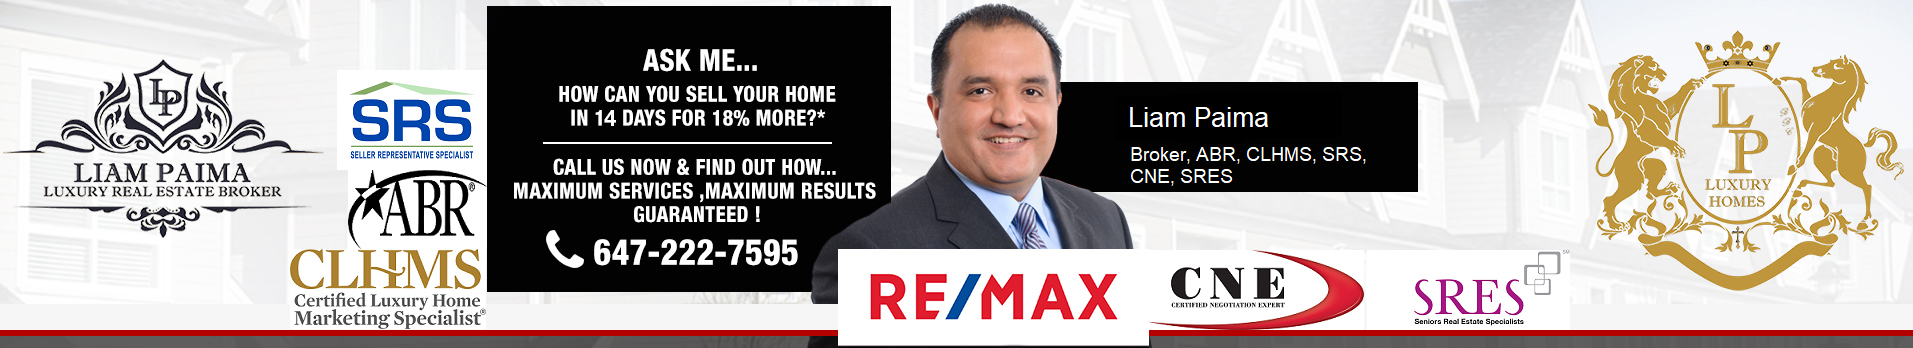 #1 Low Commission Real Estate Agent With Best Low Real Estate Commission Service In Toronto, Vaughan, Kleinburg, Oakville, Richmond Hill, Mississauga, Brampton, Milton, Caledon, Georgetown, Burlington, Orangeville, Markham - Page - 39